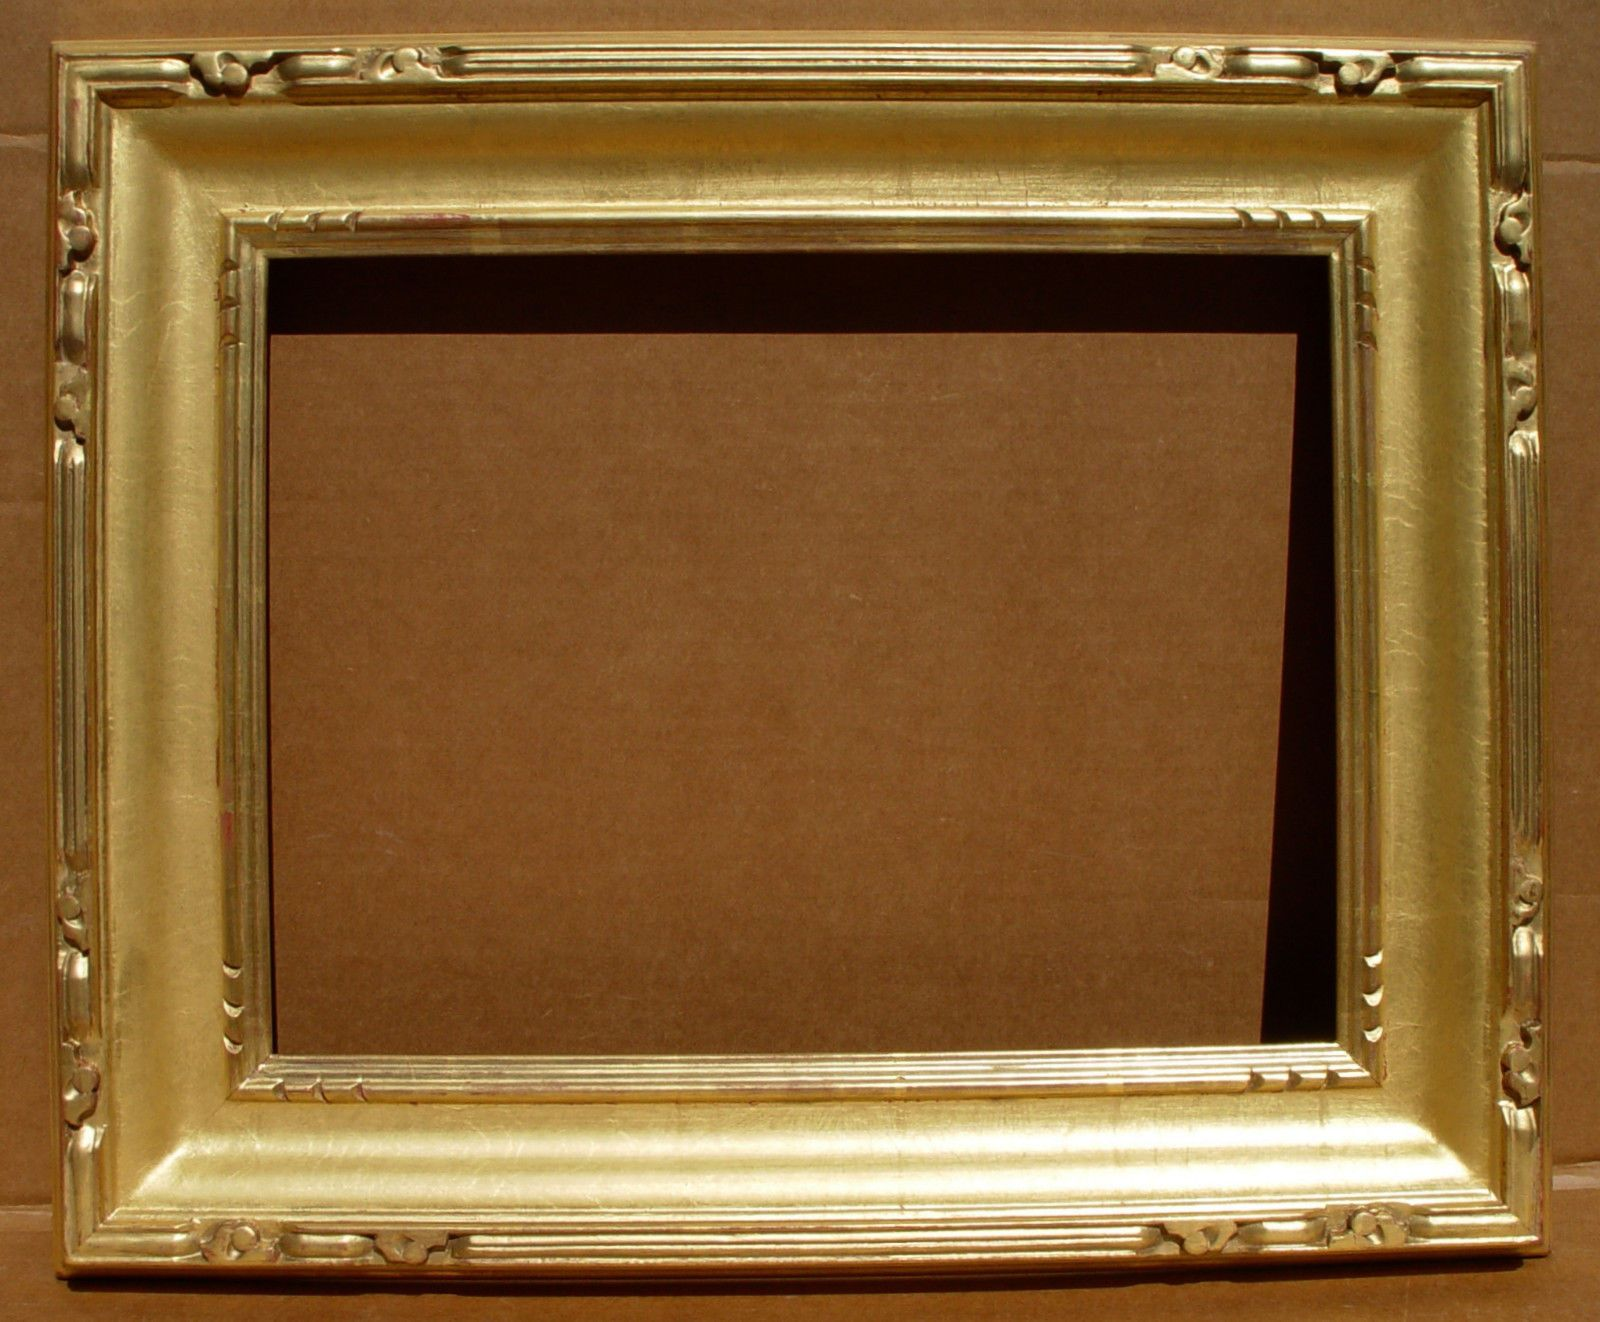 Arts Crafts Gold Leaf Motyka Frame For Standard 12 X 16 Inch Oil Frame Gold Leaf Art